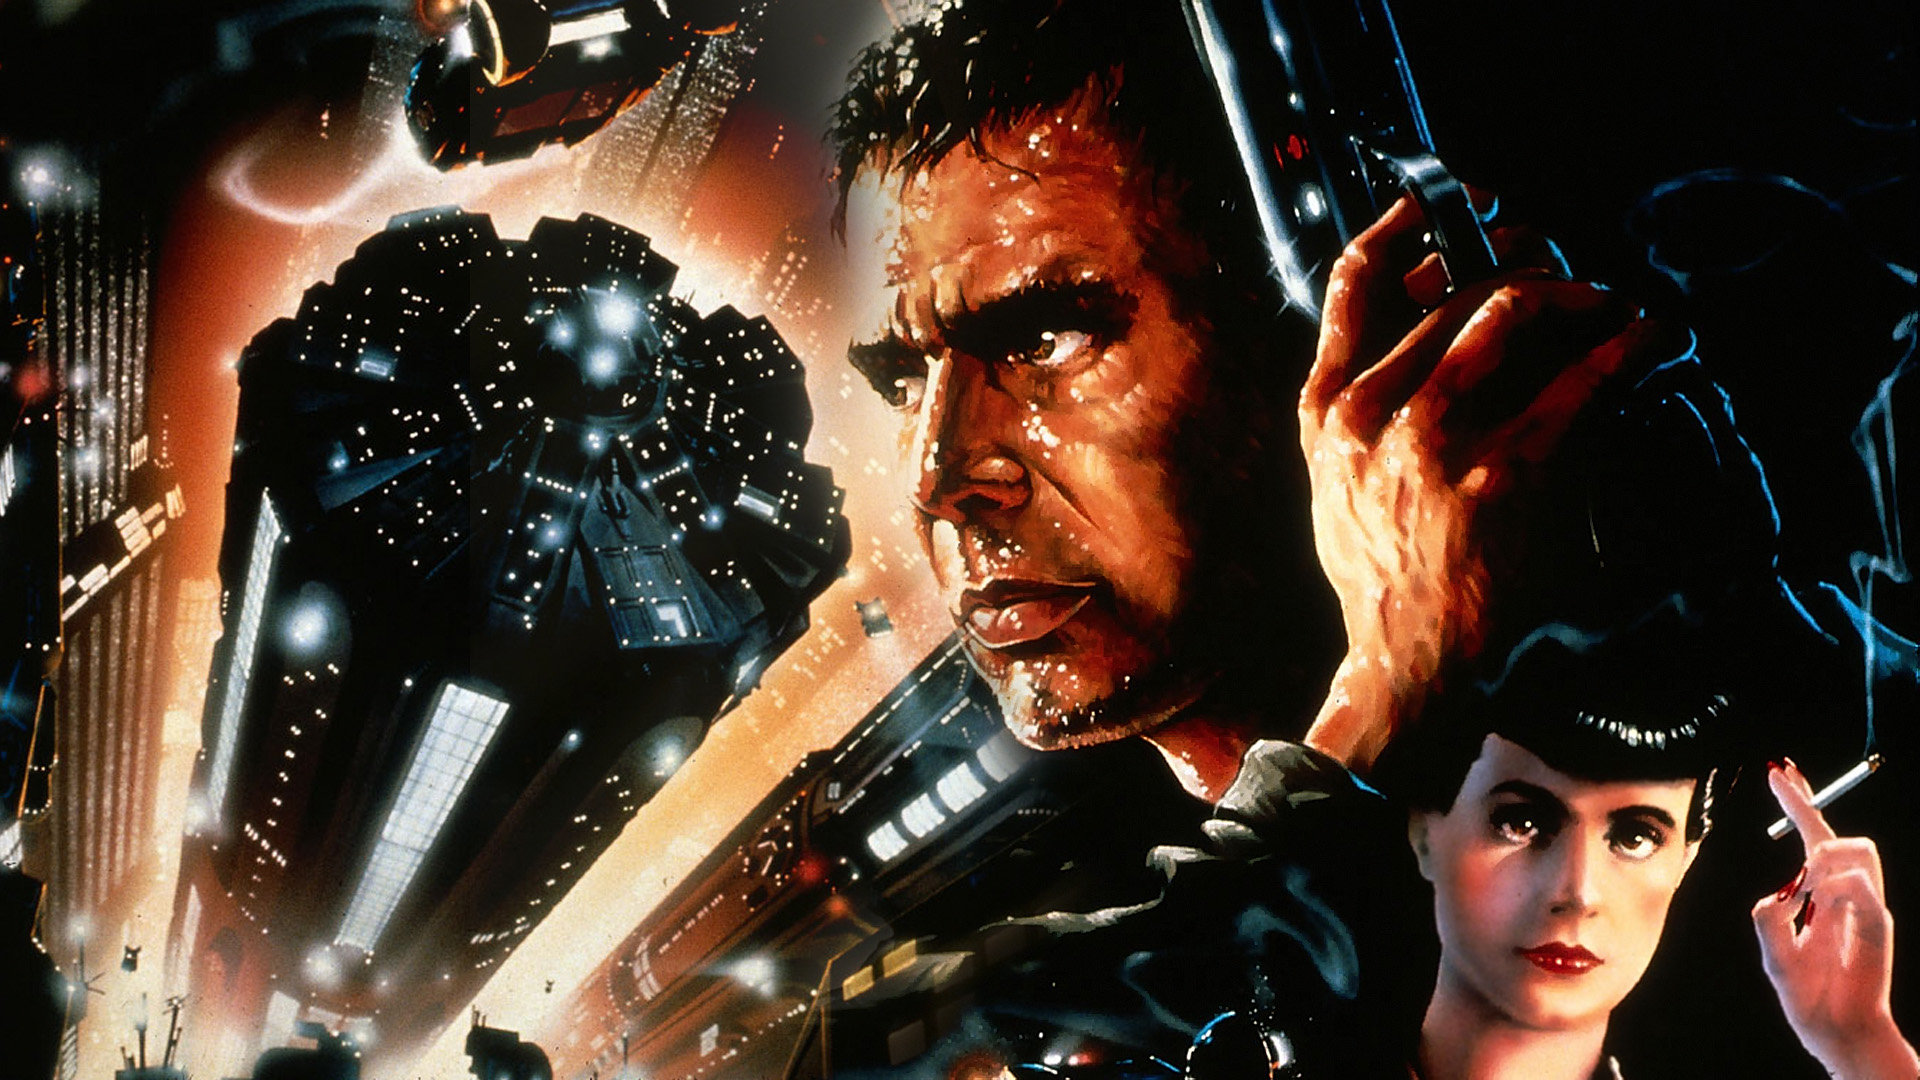 Blade Runner 2 will bring back Harrison Ford